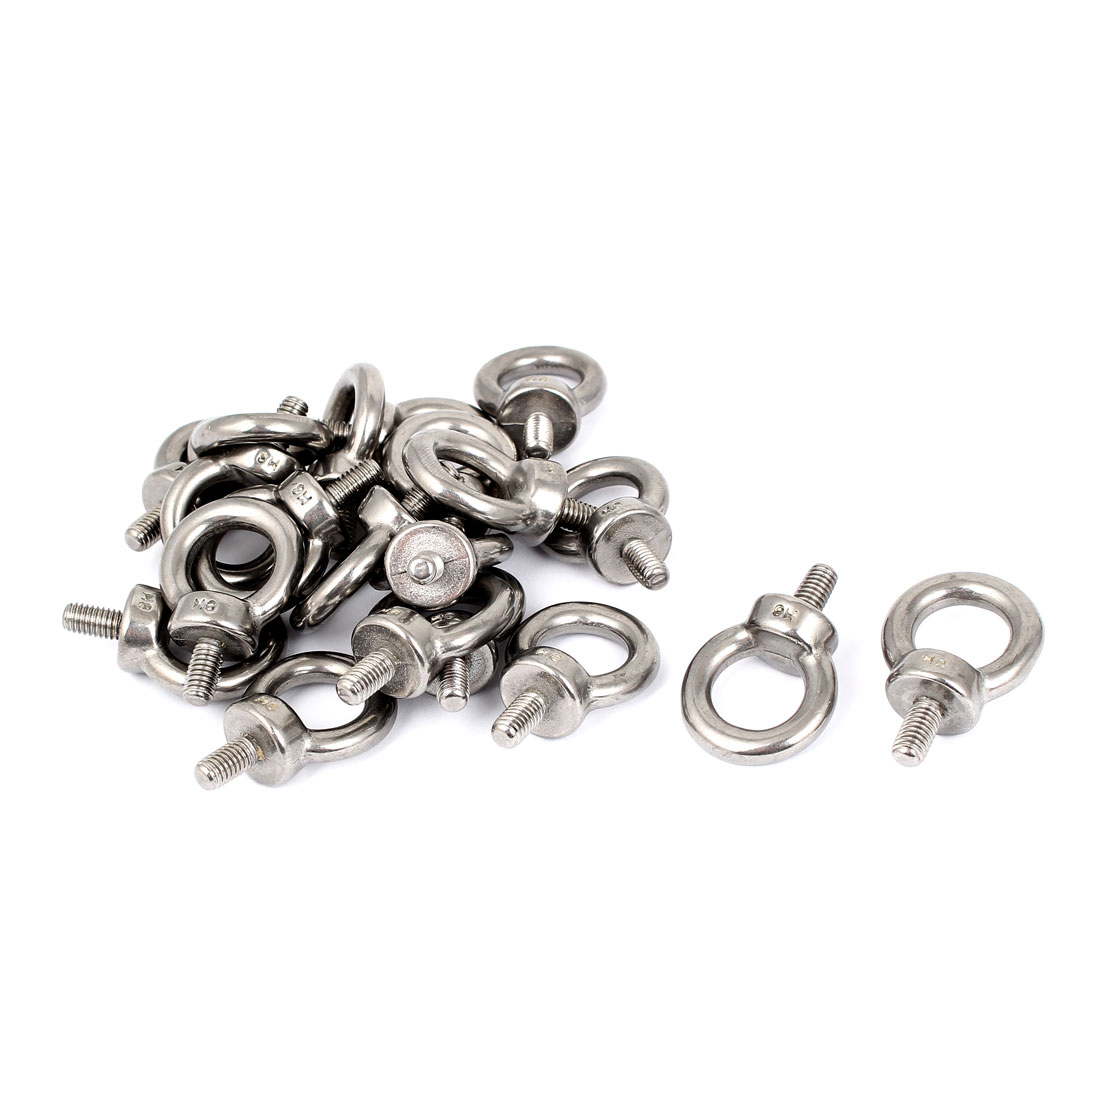 304 Stainless Steel Machinery Shoulder Lifting Eye Bolt 20 Pcs